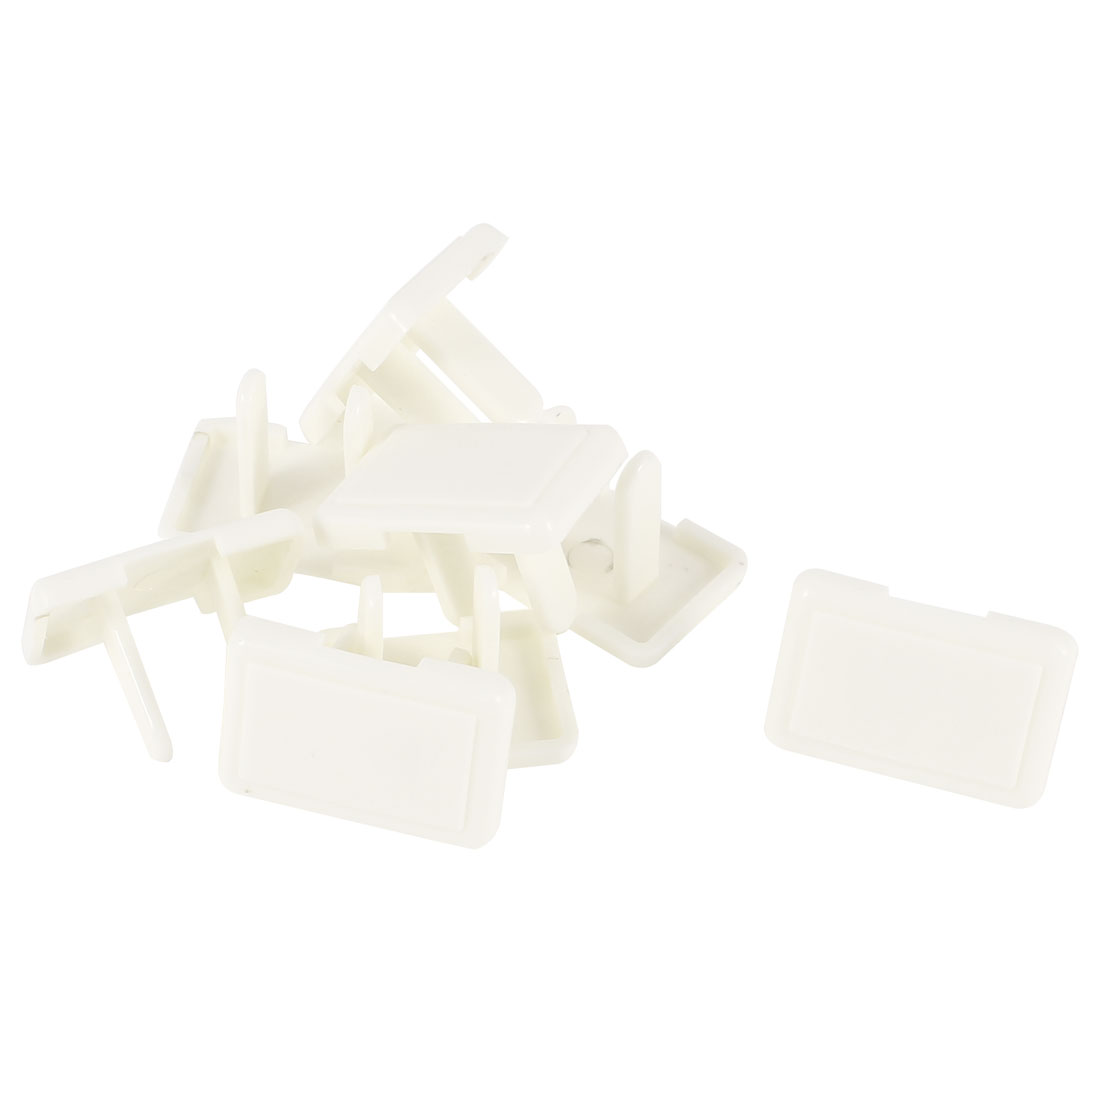 8 Pcs 2 Pole Flat Plug Rectangle Protecting Socket Cover Plastic White